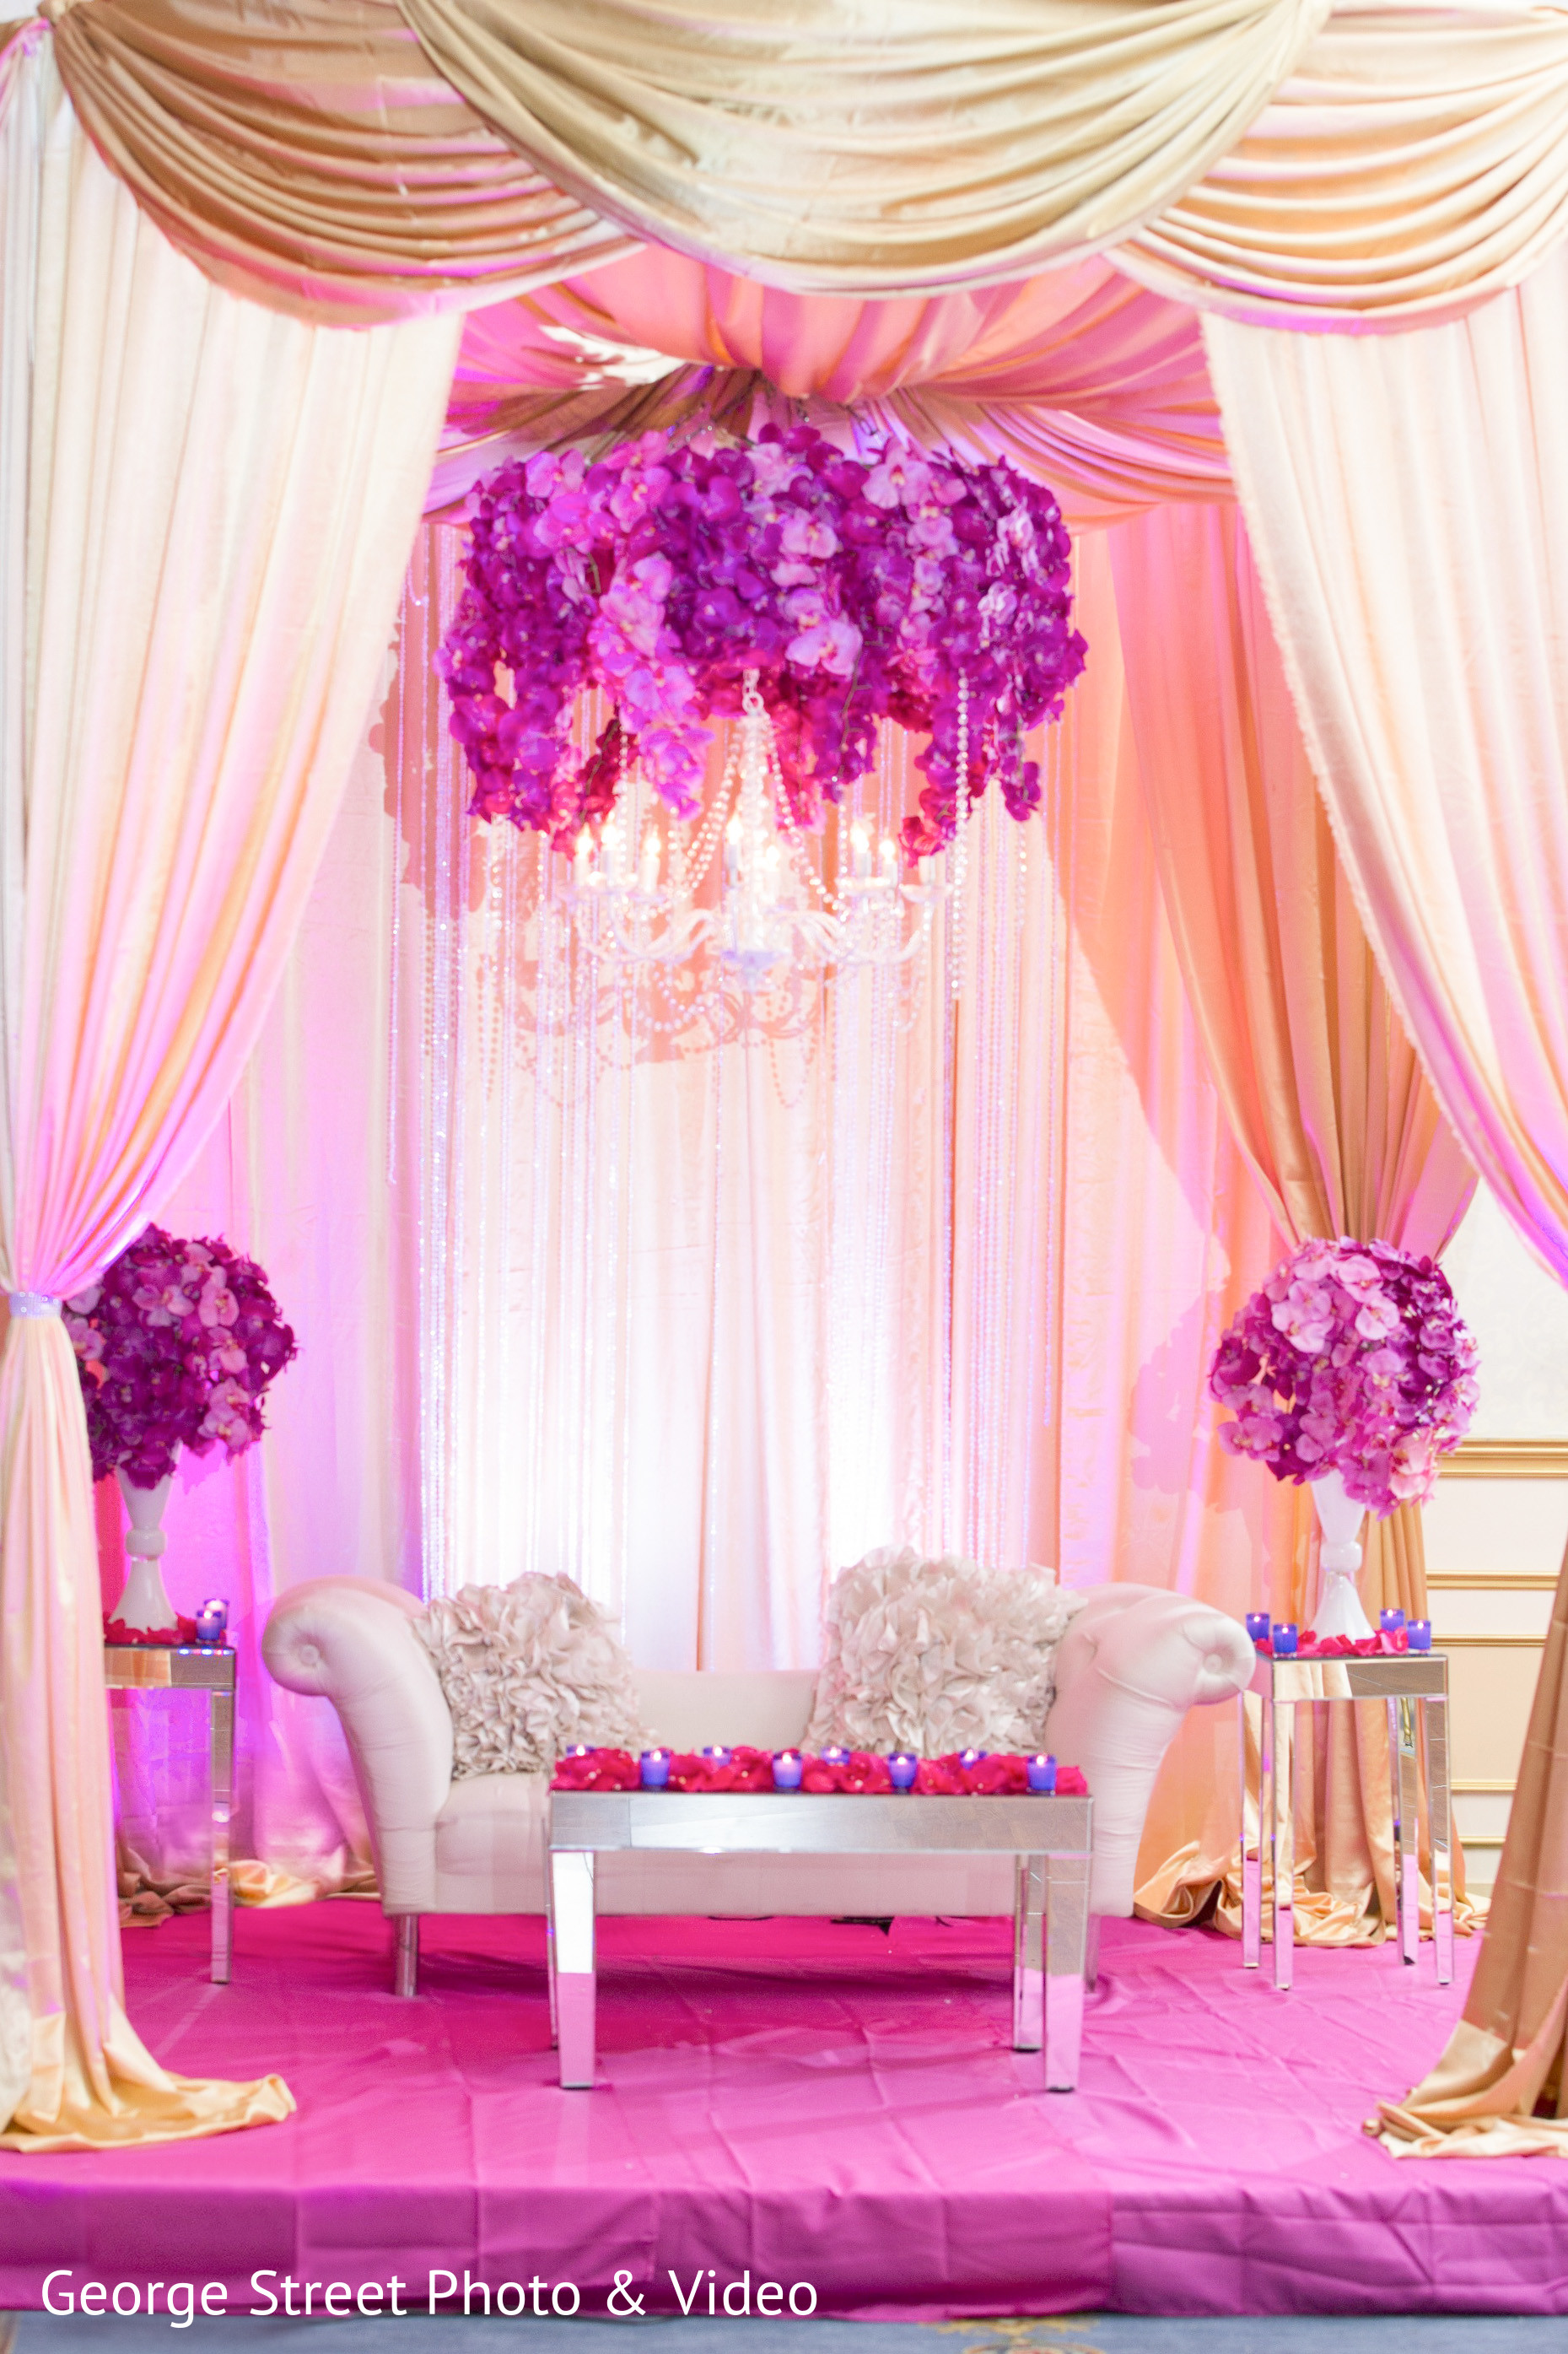 Sweetheart Stage | Photo 35414